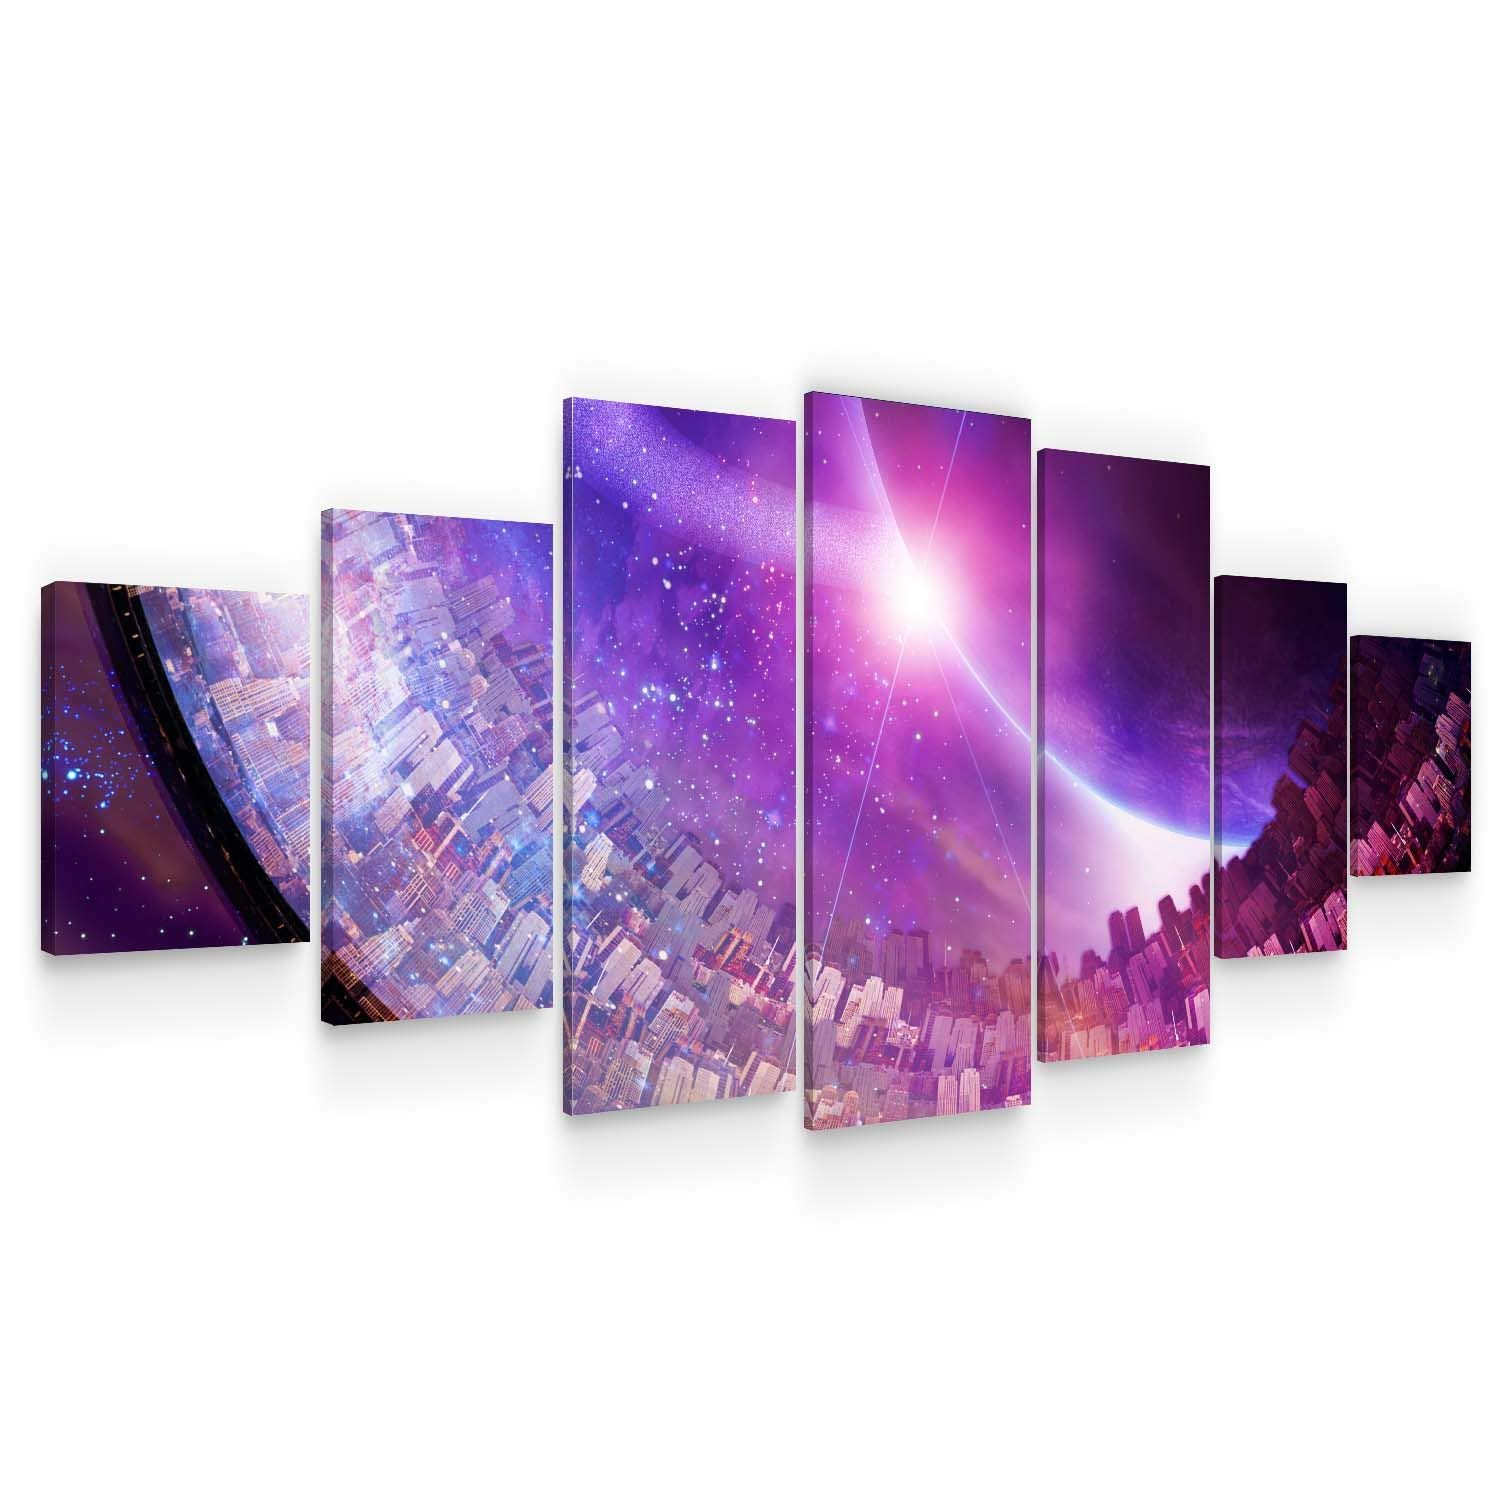 Startonight Huge Canvas Wall Art Purple Abstract - Large Framed Set of 7 40 x 95 Inches